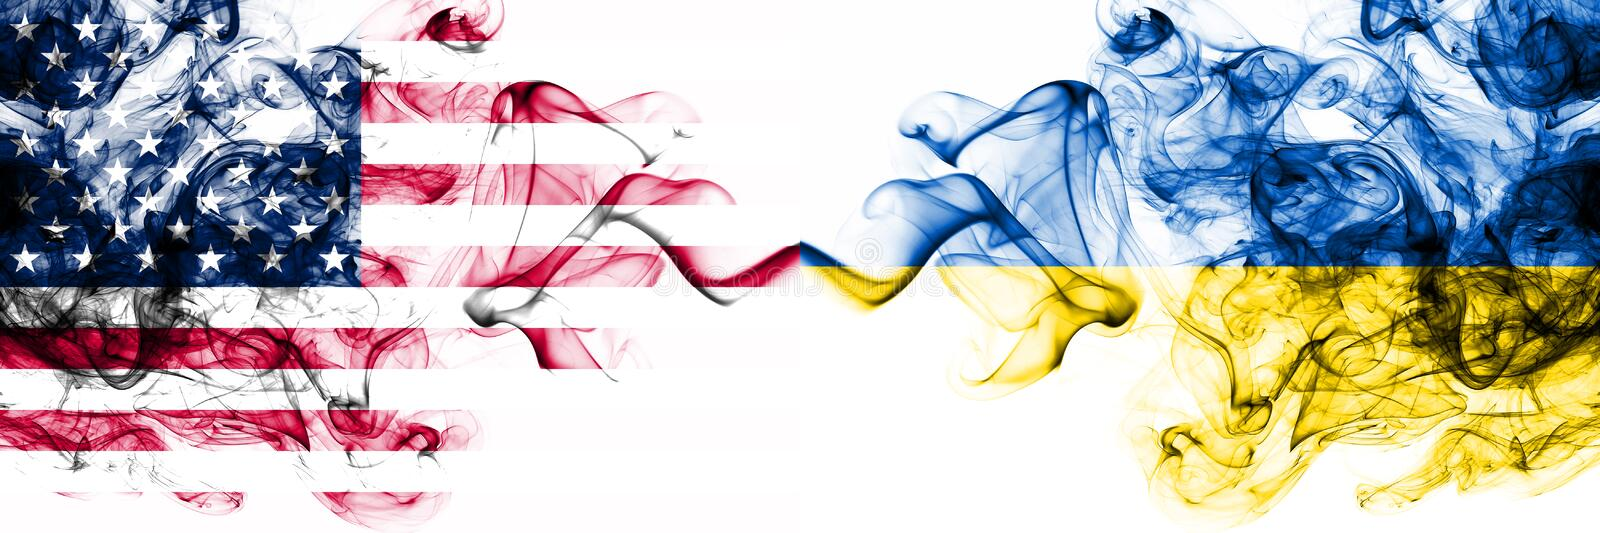 United States of America vs Ukraine, Ukrainian smoky mystic flags placed side by side. Thick colored silky abstract smokes banner. Of America and Ukraine stock illustration